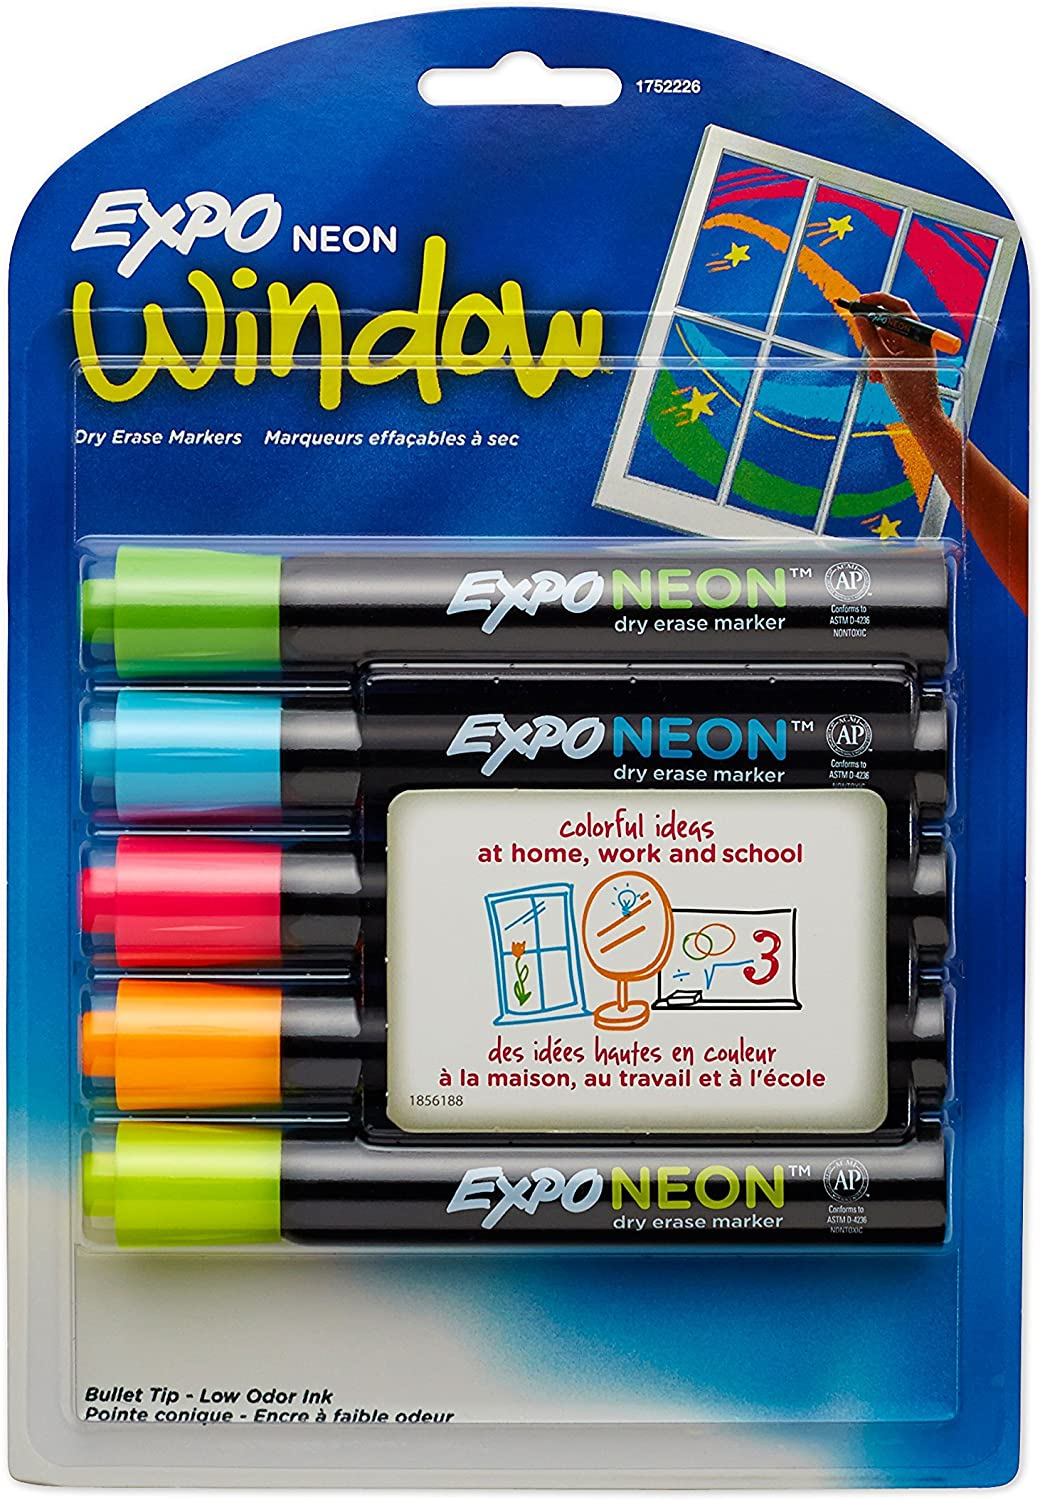 Dry Erase Tucson Mall Neon Markers Whiteboa Attention brand Bullet Tip